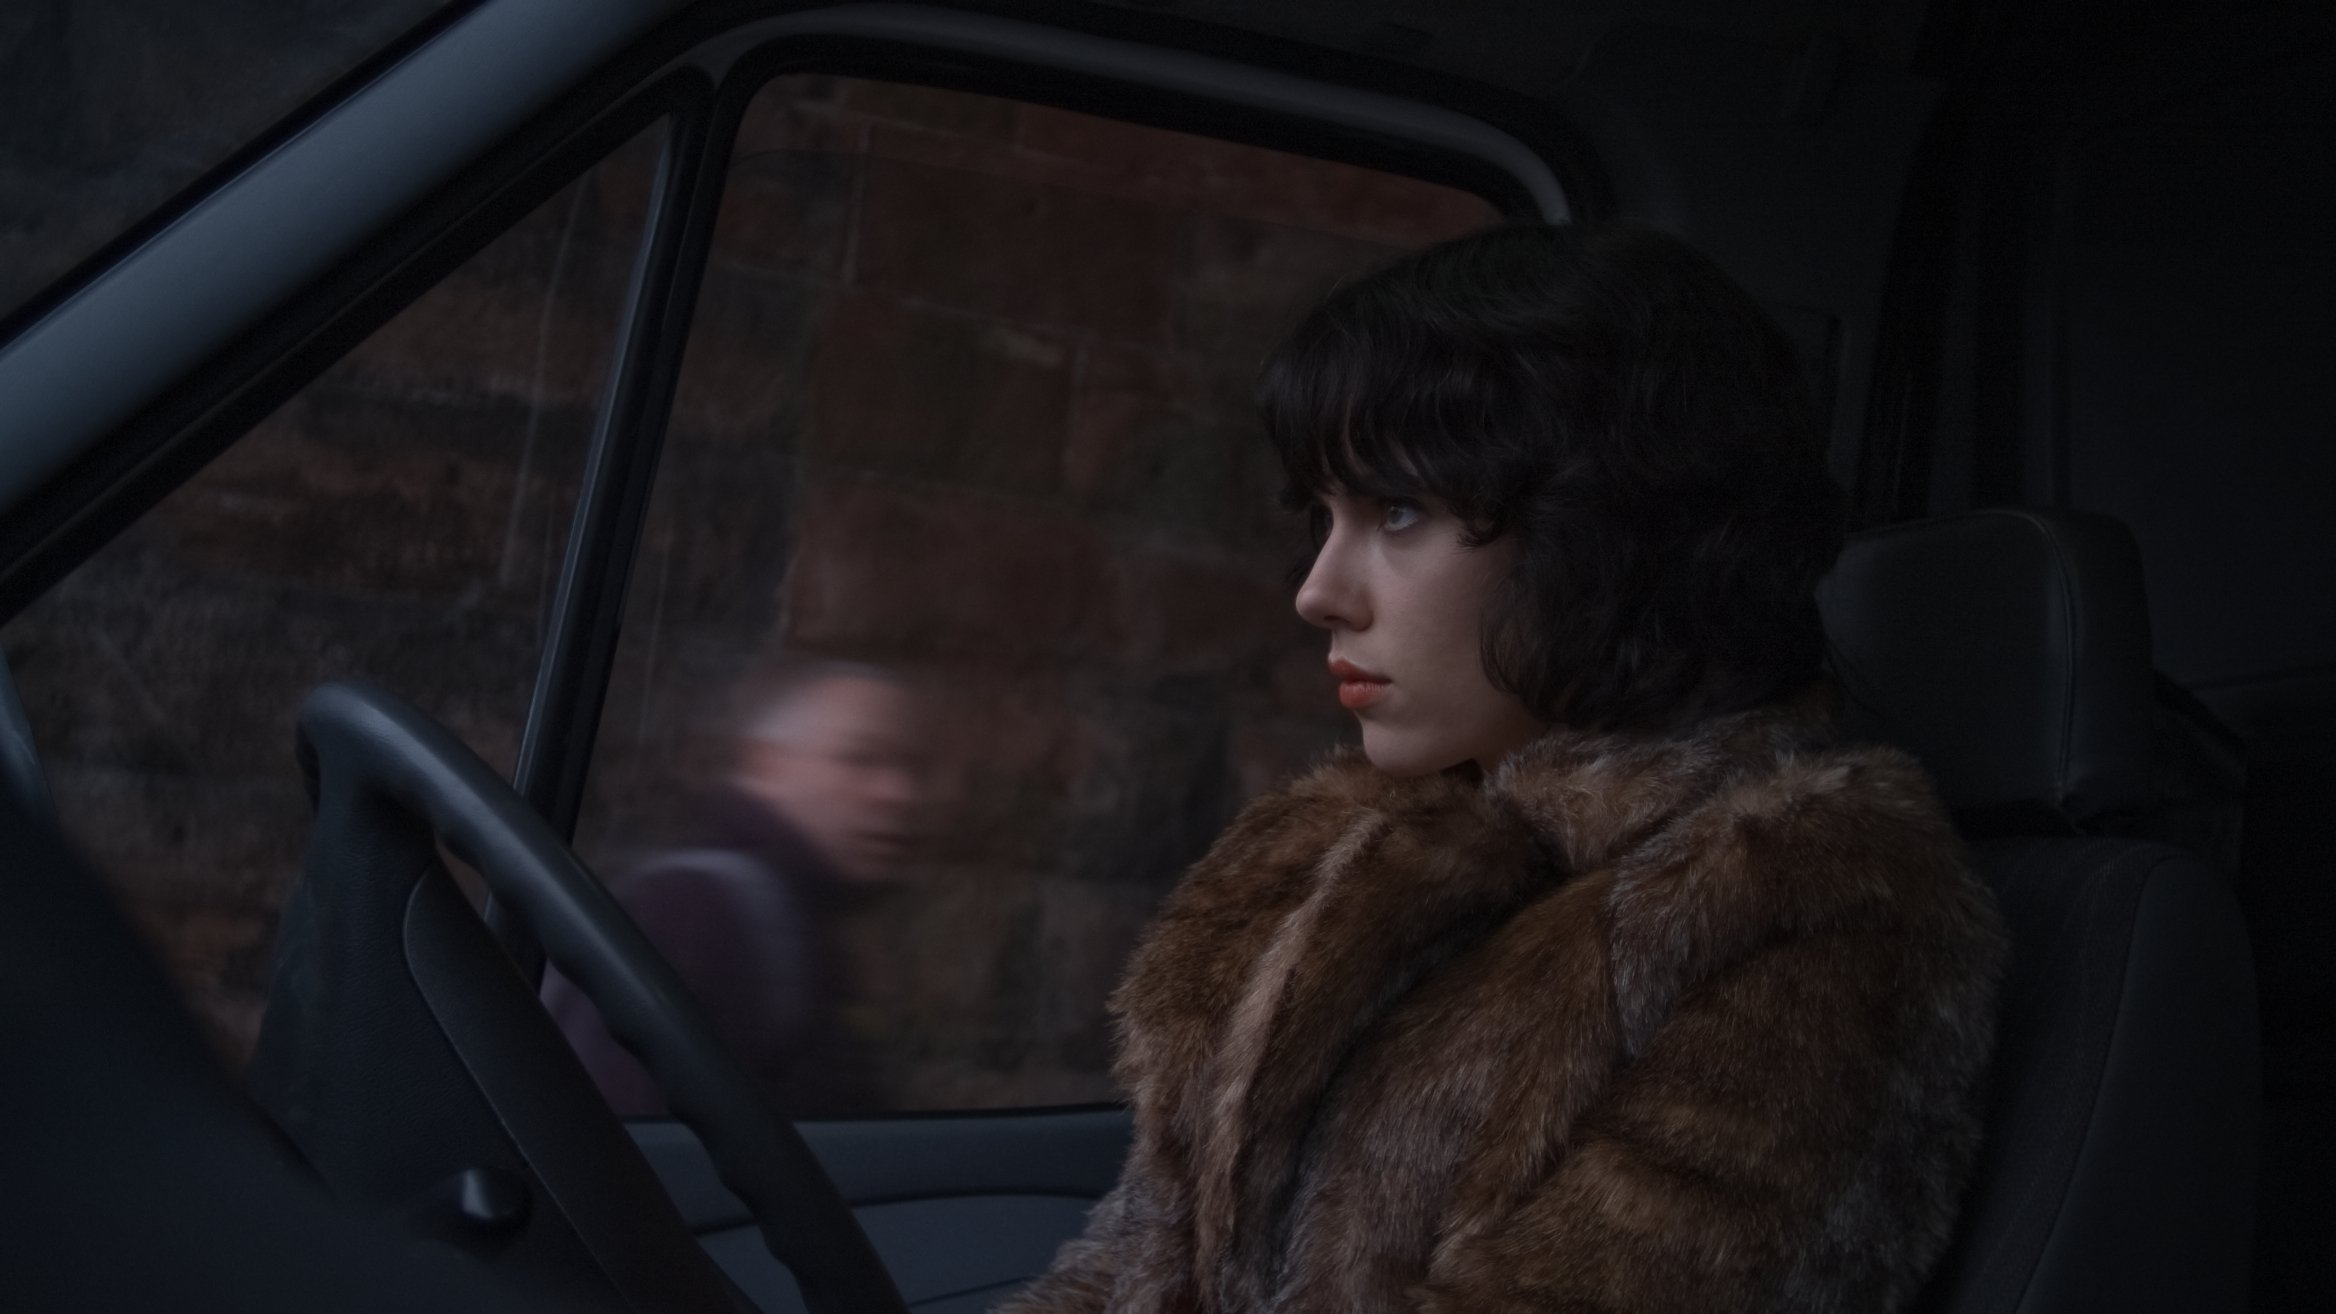 Photo du film Under the Skin avec Scarlett Johansson